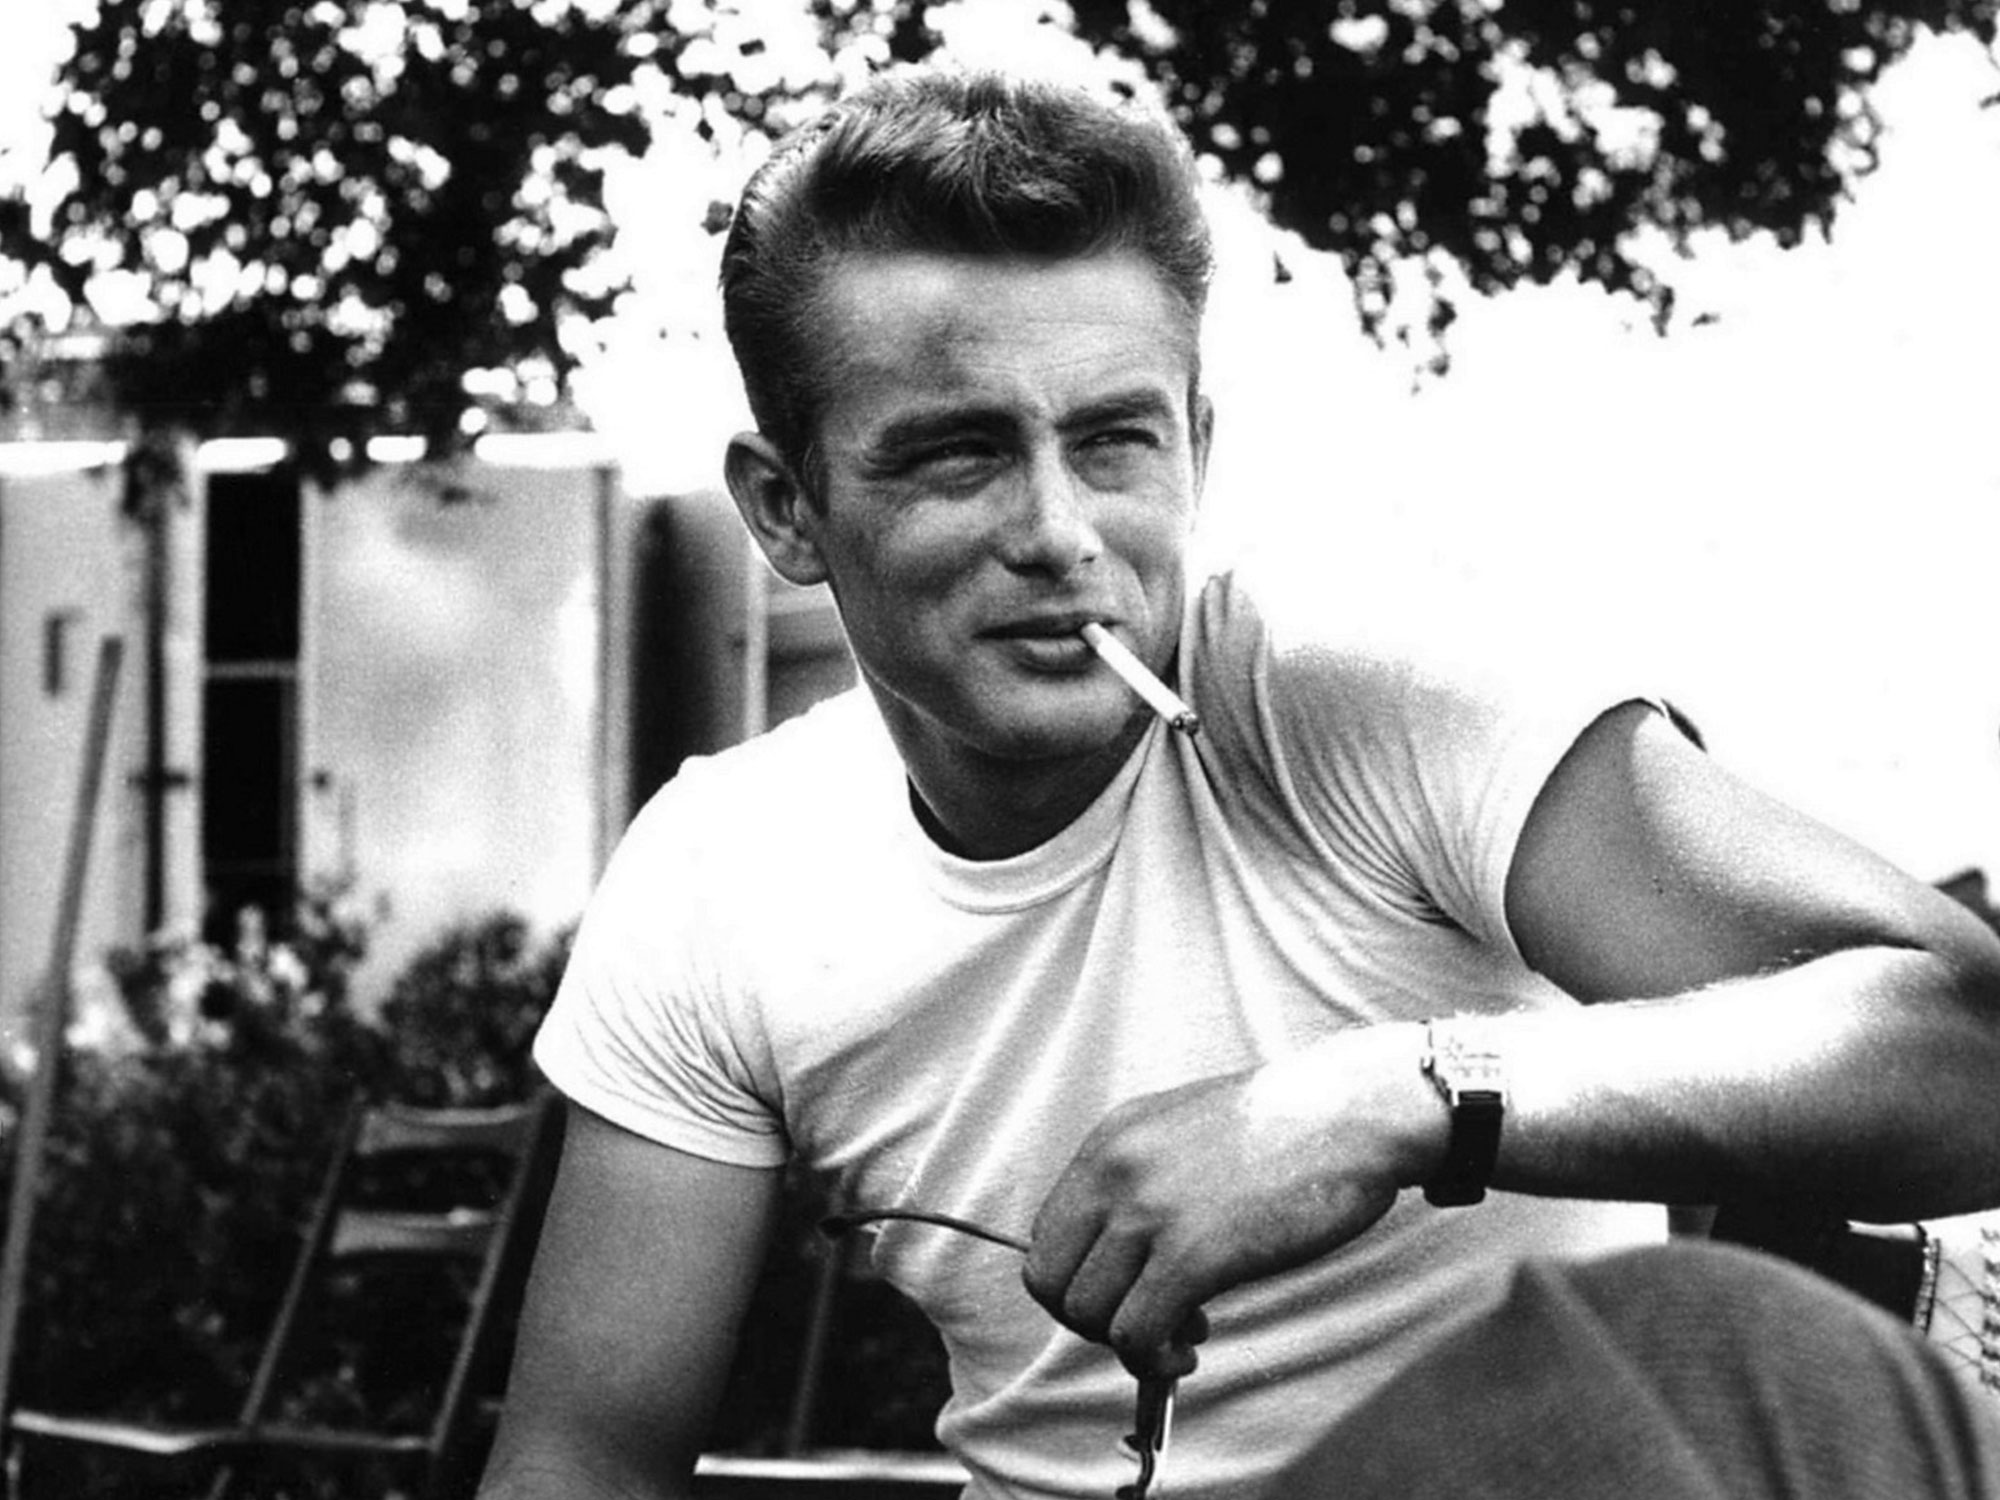 How to Have More Confidence James Dean